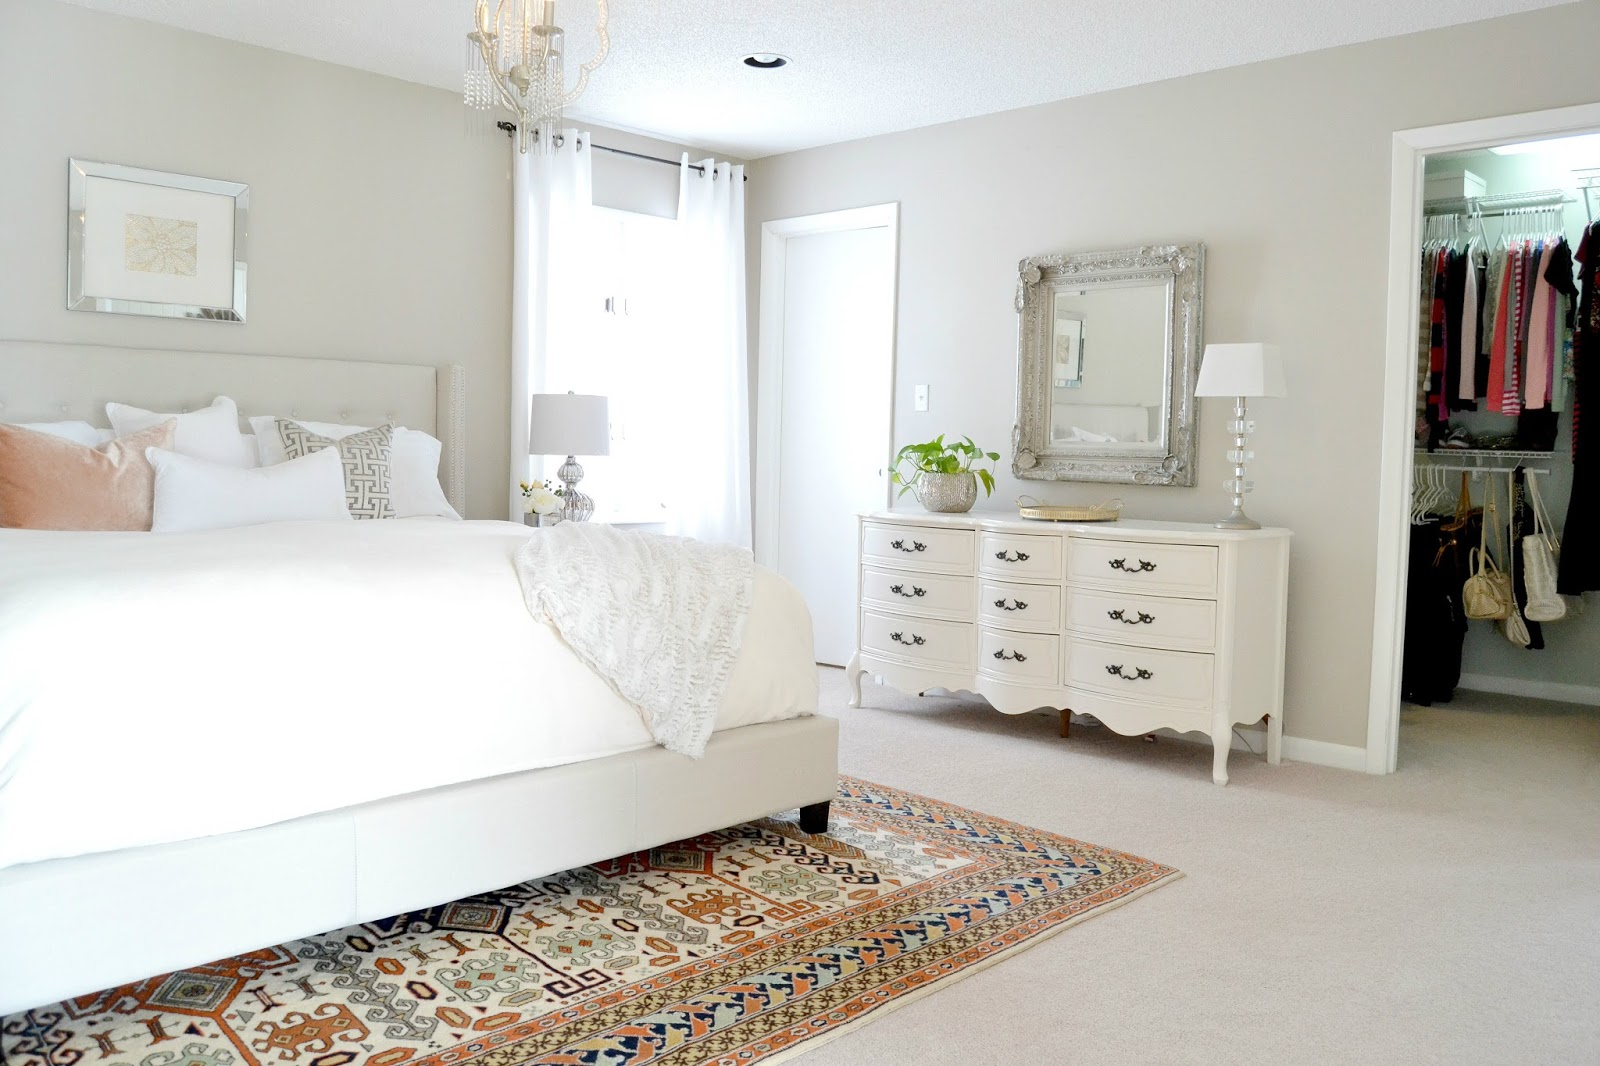 Most Recent Fixer Upper Livelovediy How To Decorate On A Budget Our House Tour